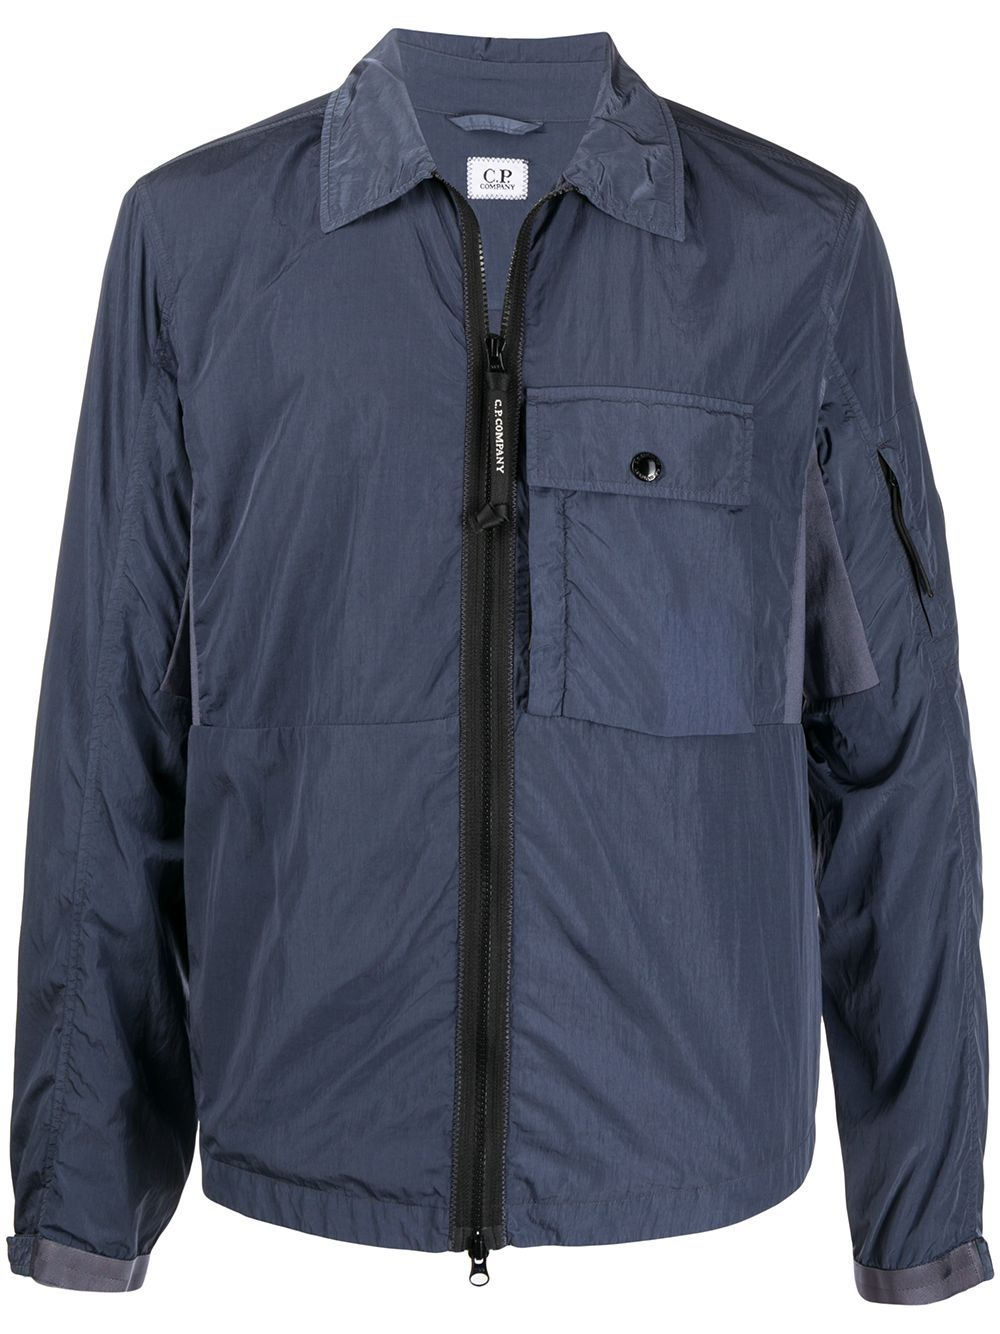 C.P. COMPANY pocket detail Lens jacket Blue